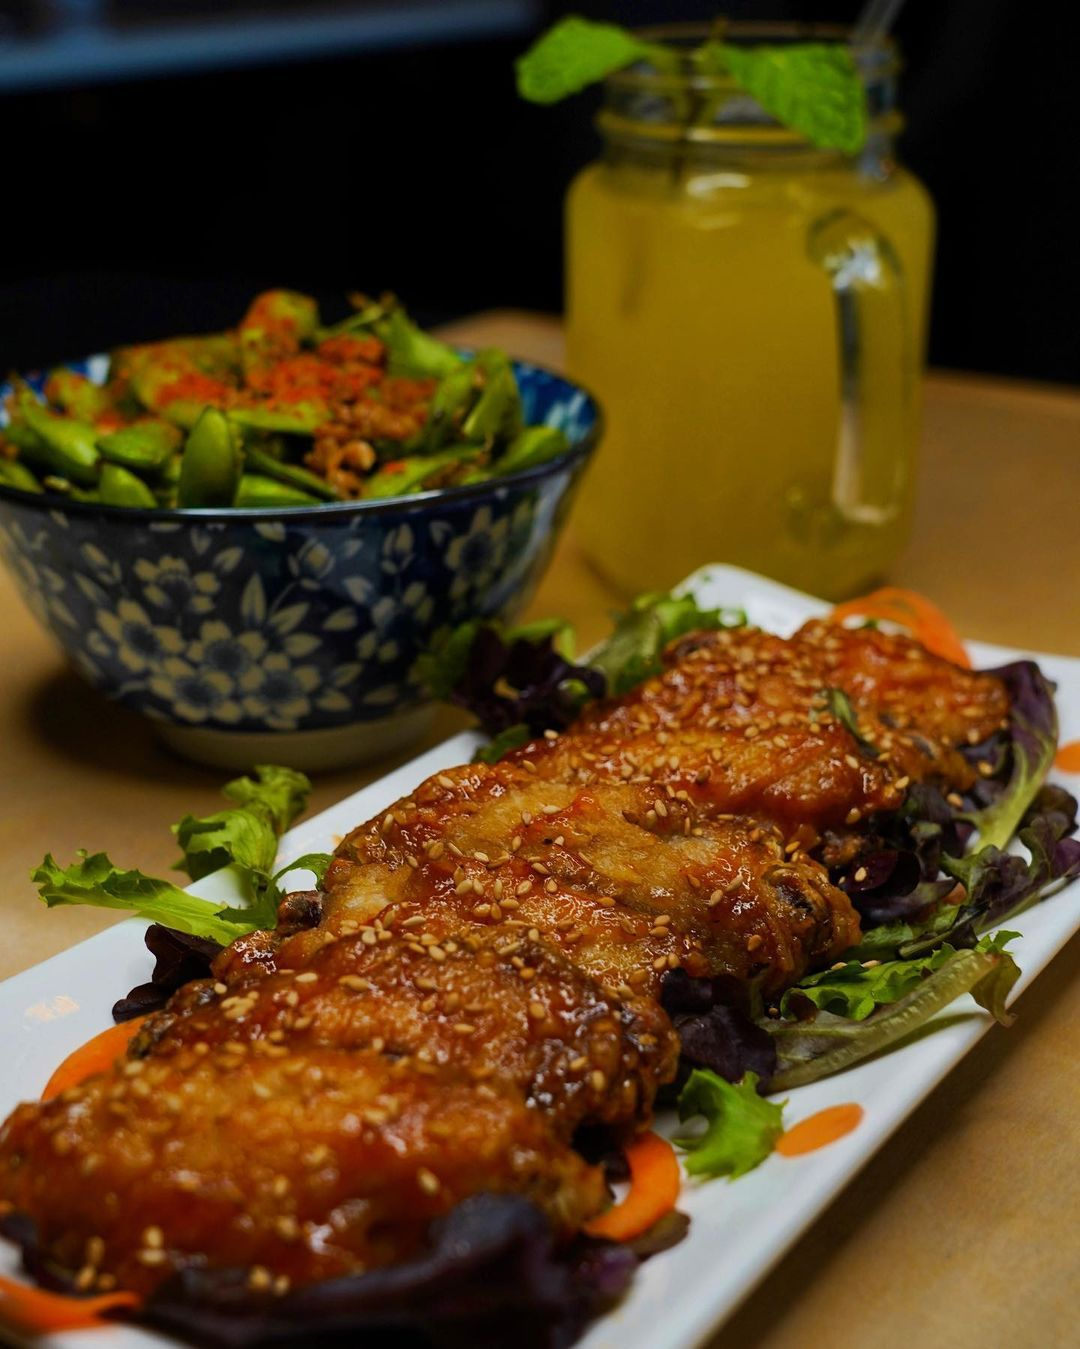 A glazed piece of meat sits atop a small salad of greens. In the background, a bowl of edamame is topped with red seasoning.